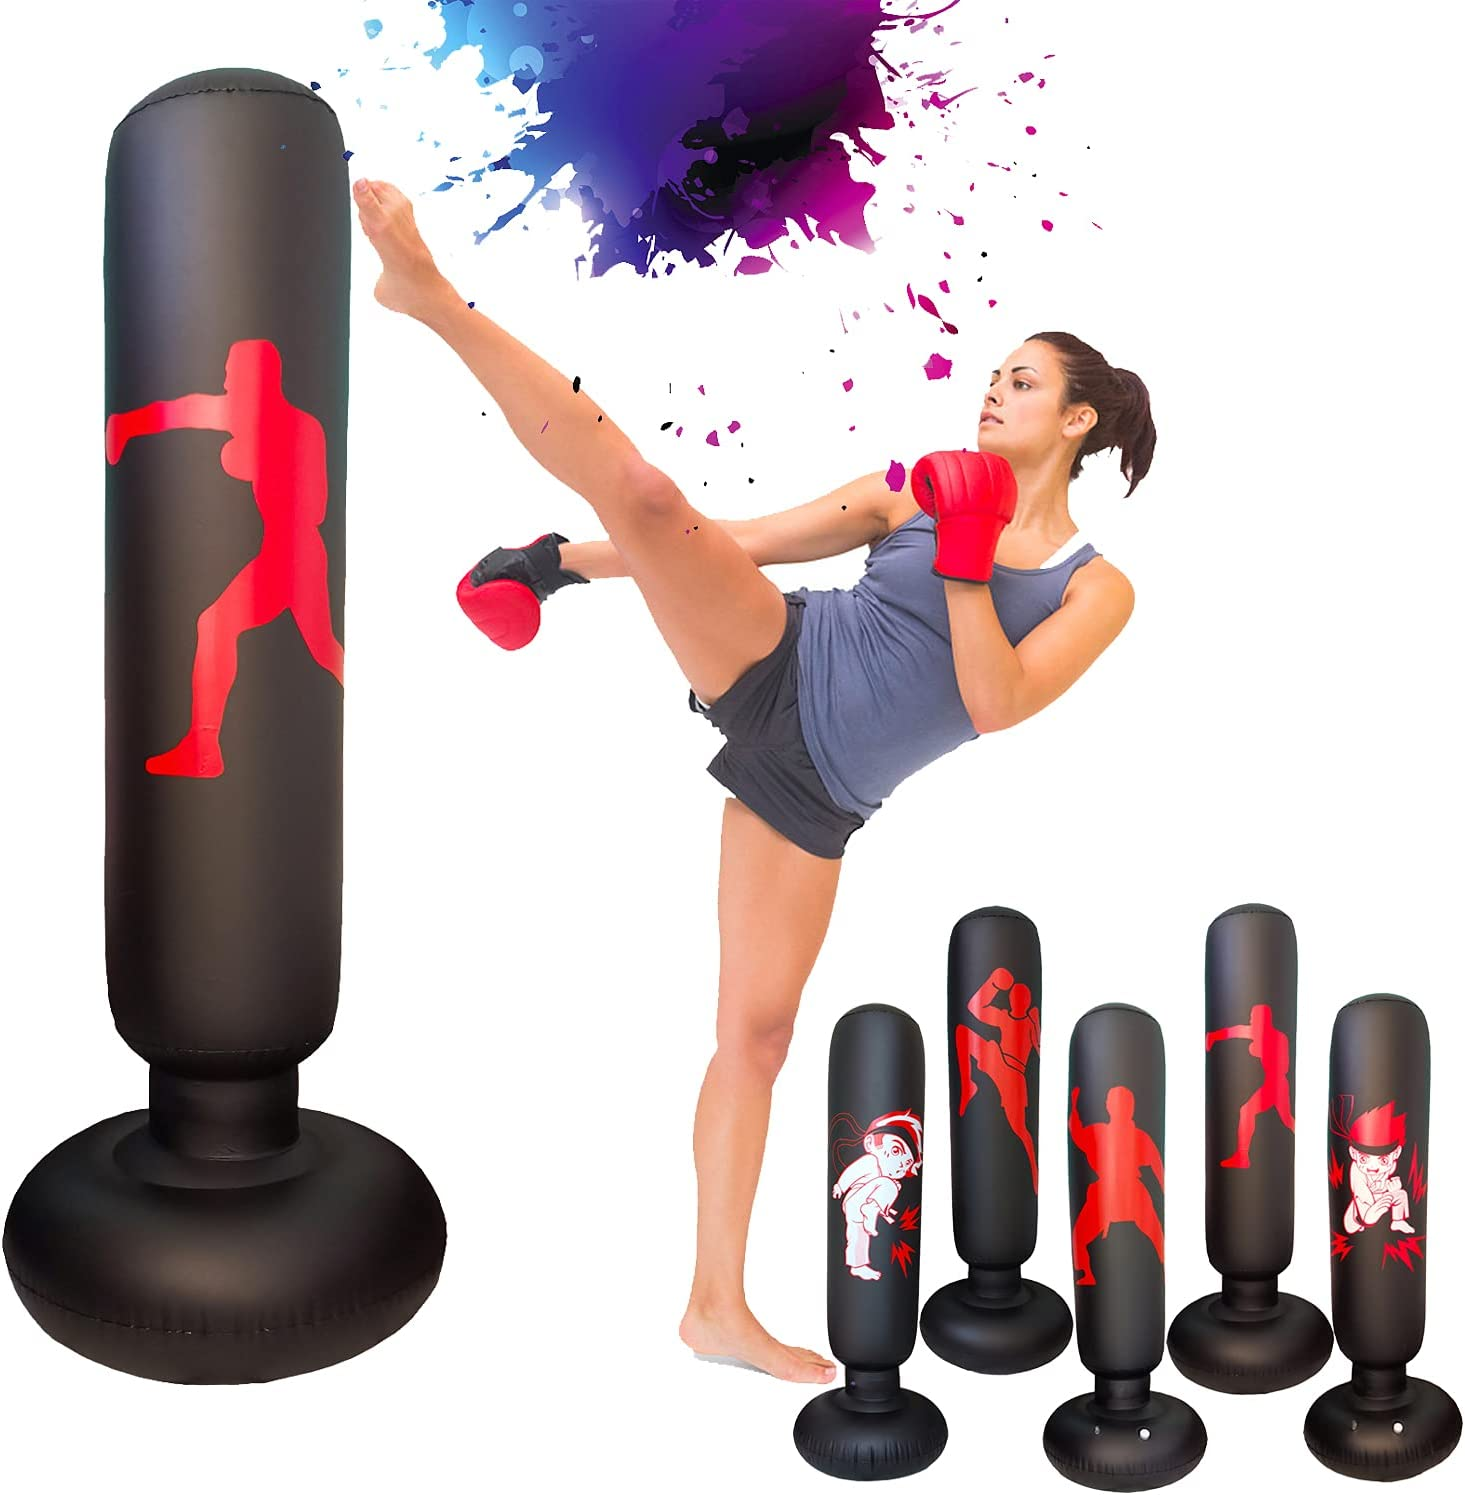 Bounce Back for Practicing Karate 63 Inch Freestanding Boxing Inflatable Punching Bag for Kids GGTYHAO Punching Bag for Kids Taekwondo Home Training Equipment